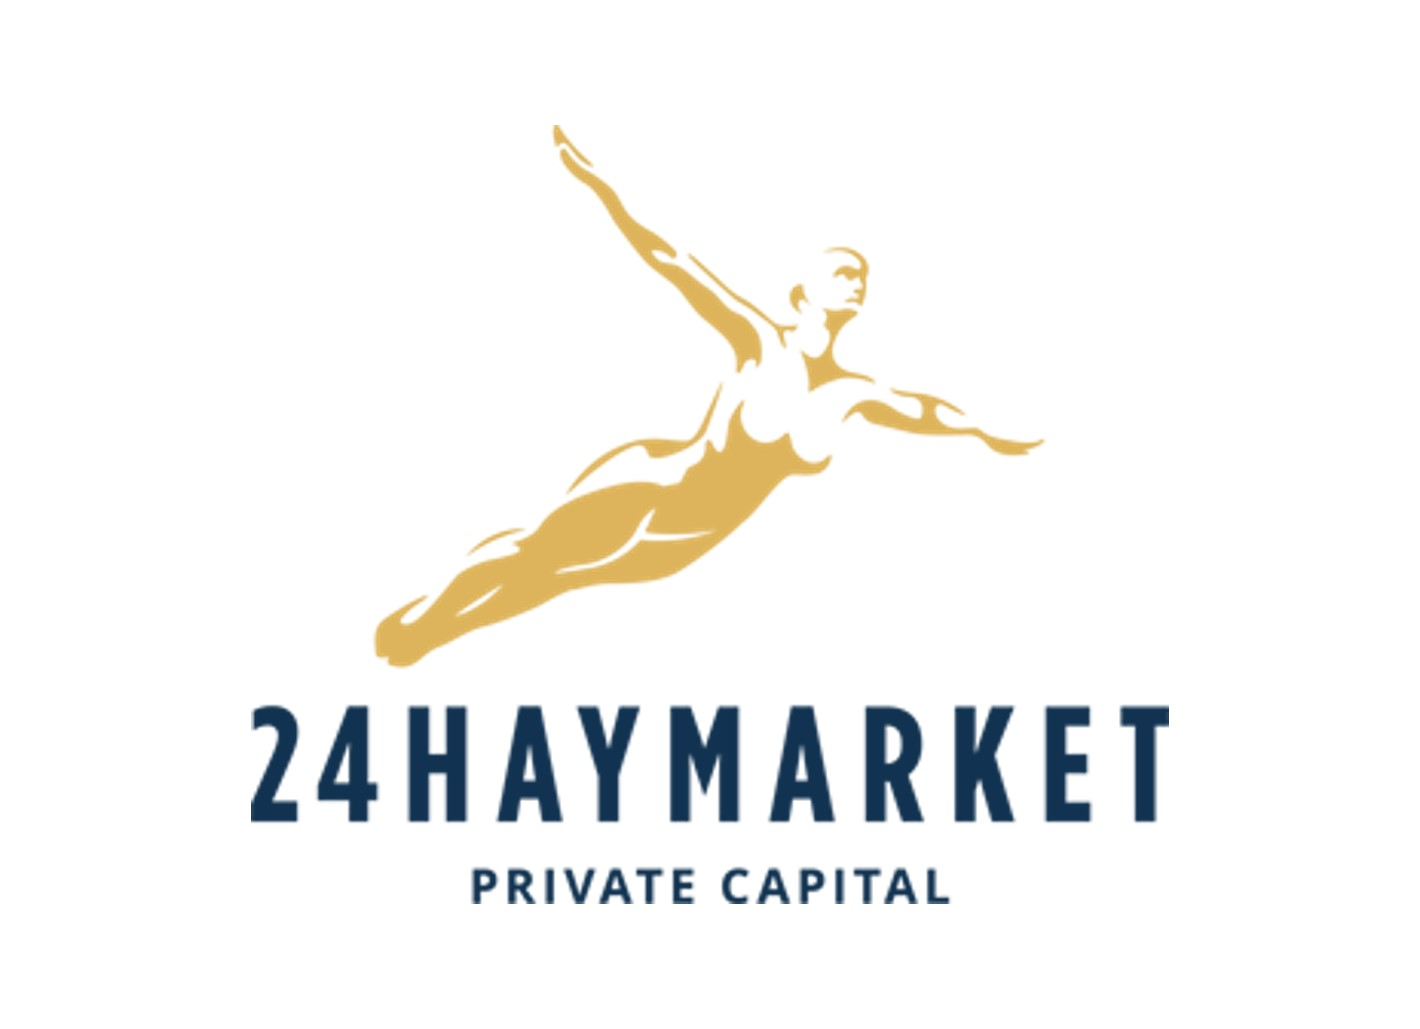 24Haymarket Private Capital | UK Business Angels Association (UKBAA)